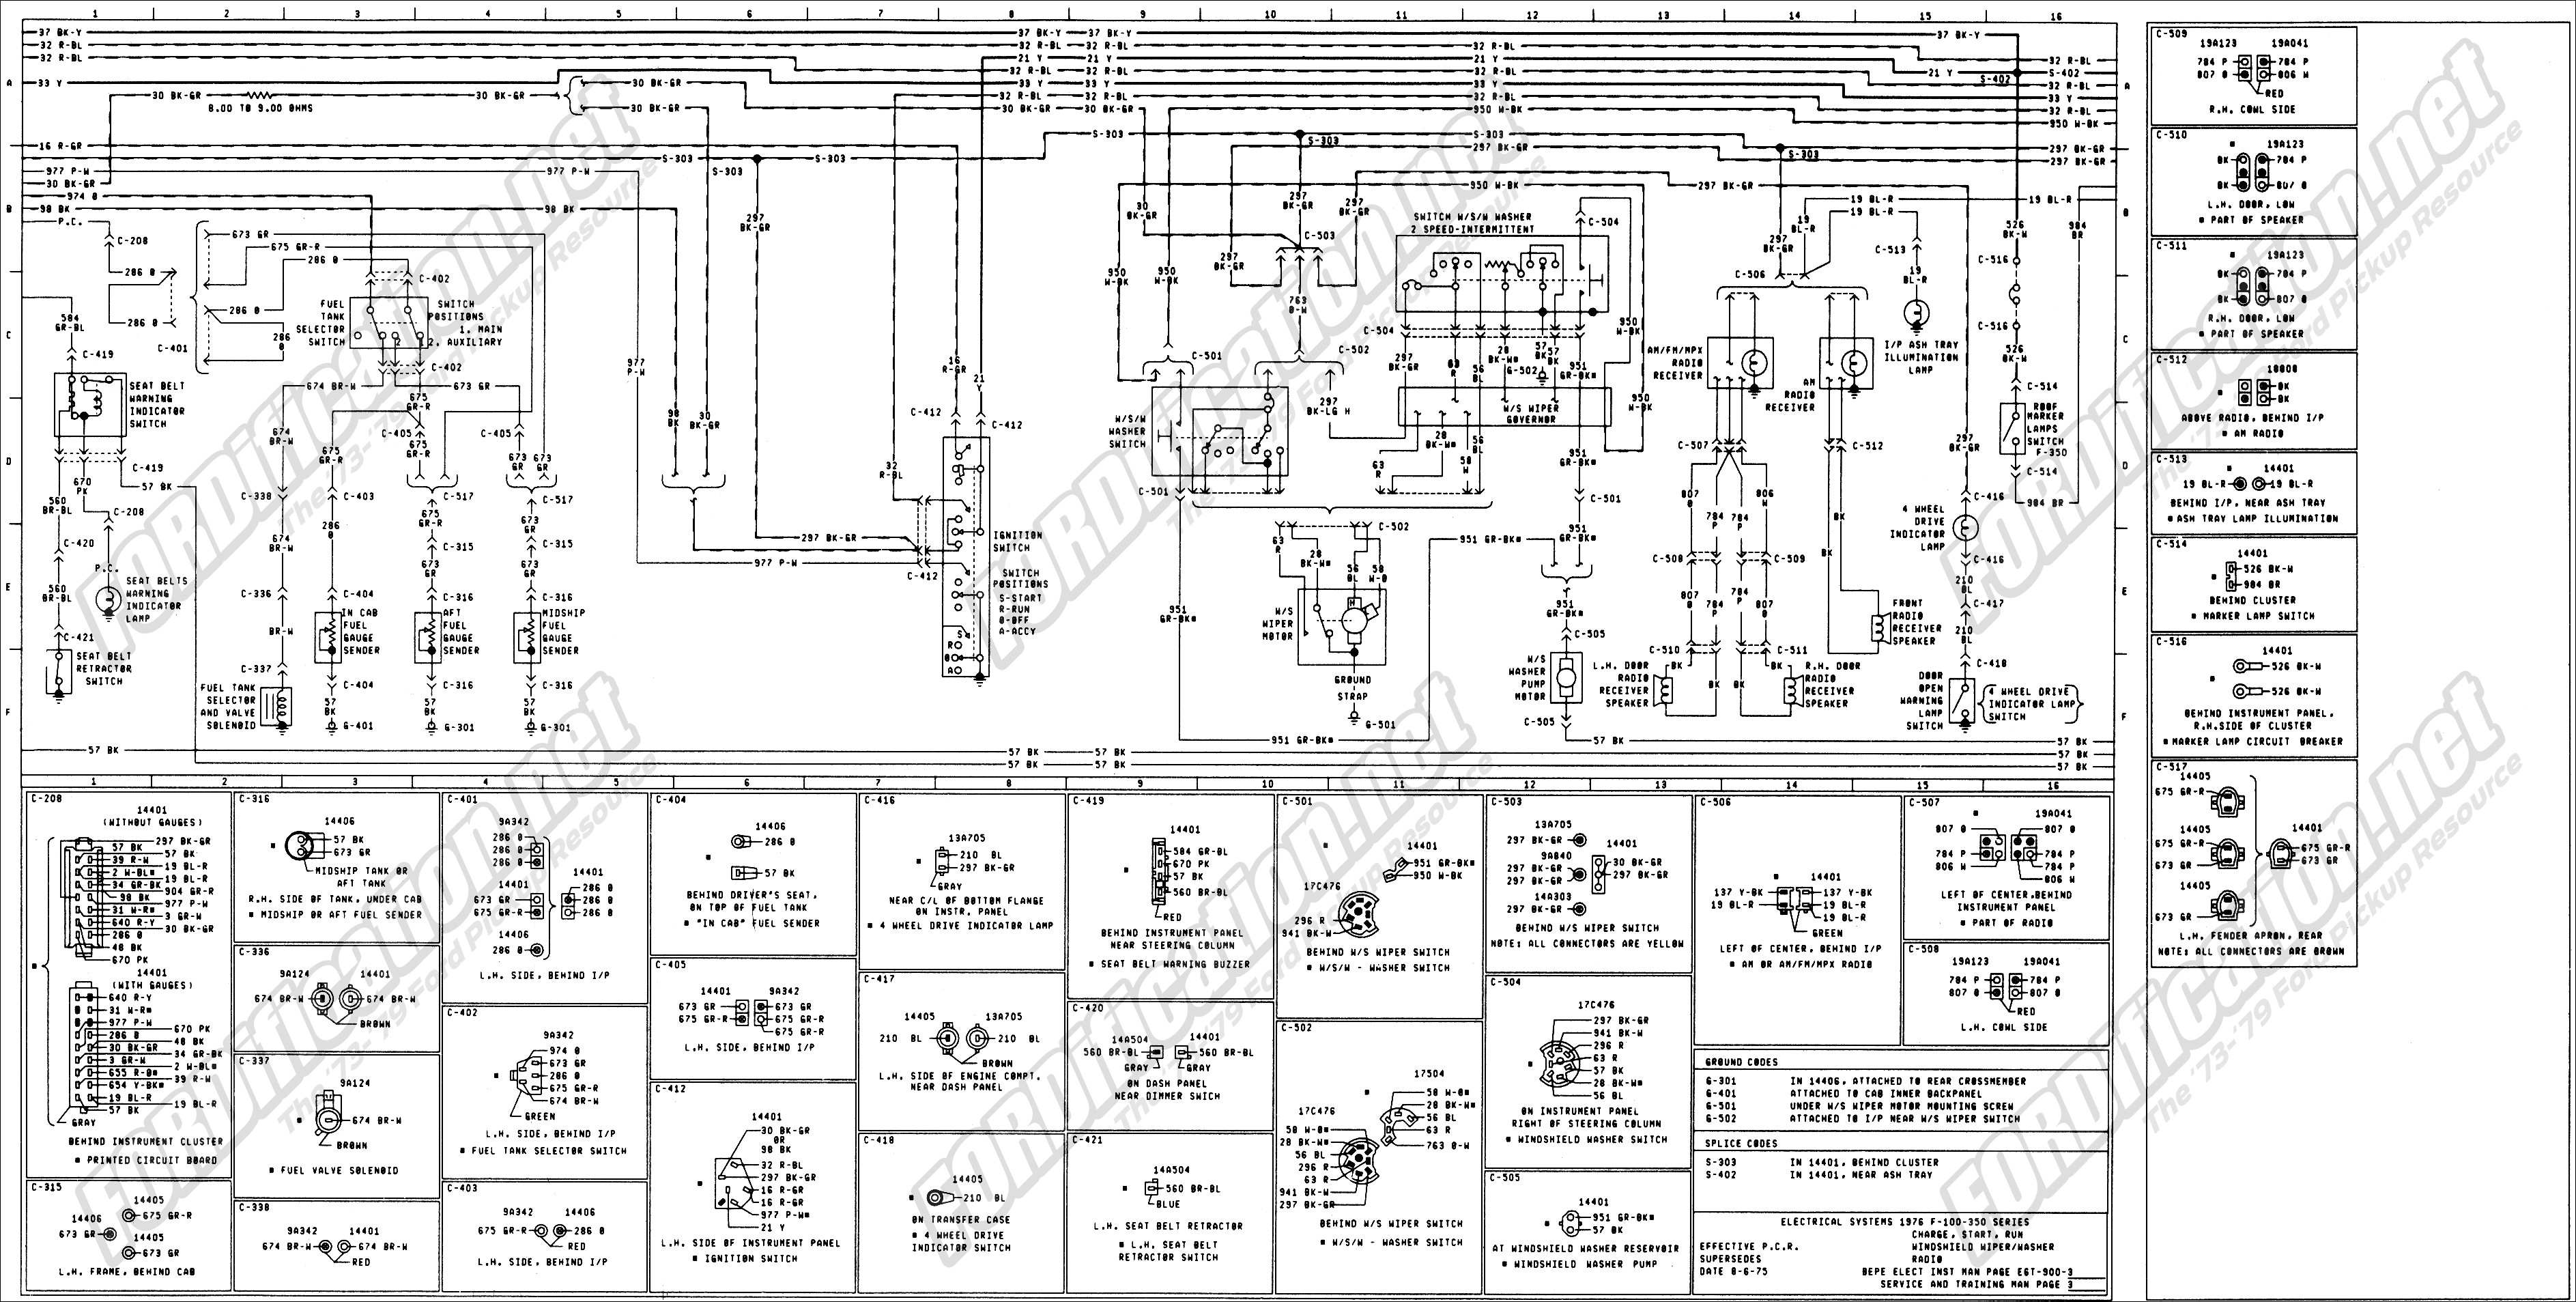 2000 Ford Truck Wiring Diagrams Electrical Focus Schematics F250 Diagram New Image